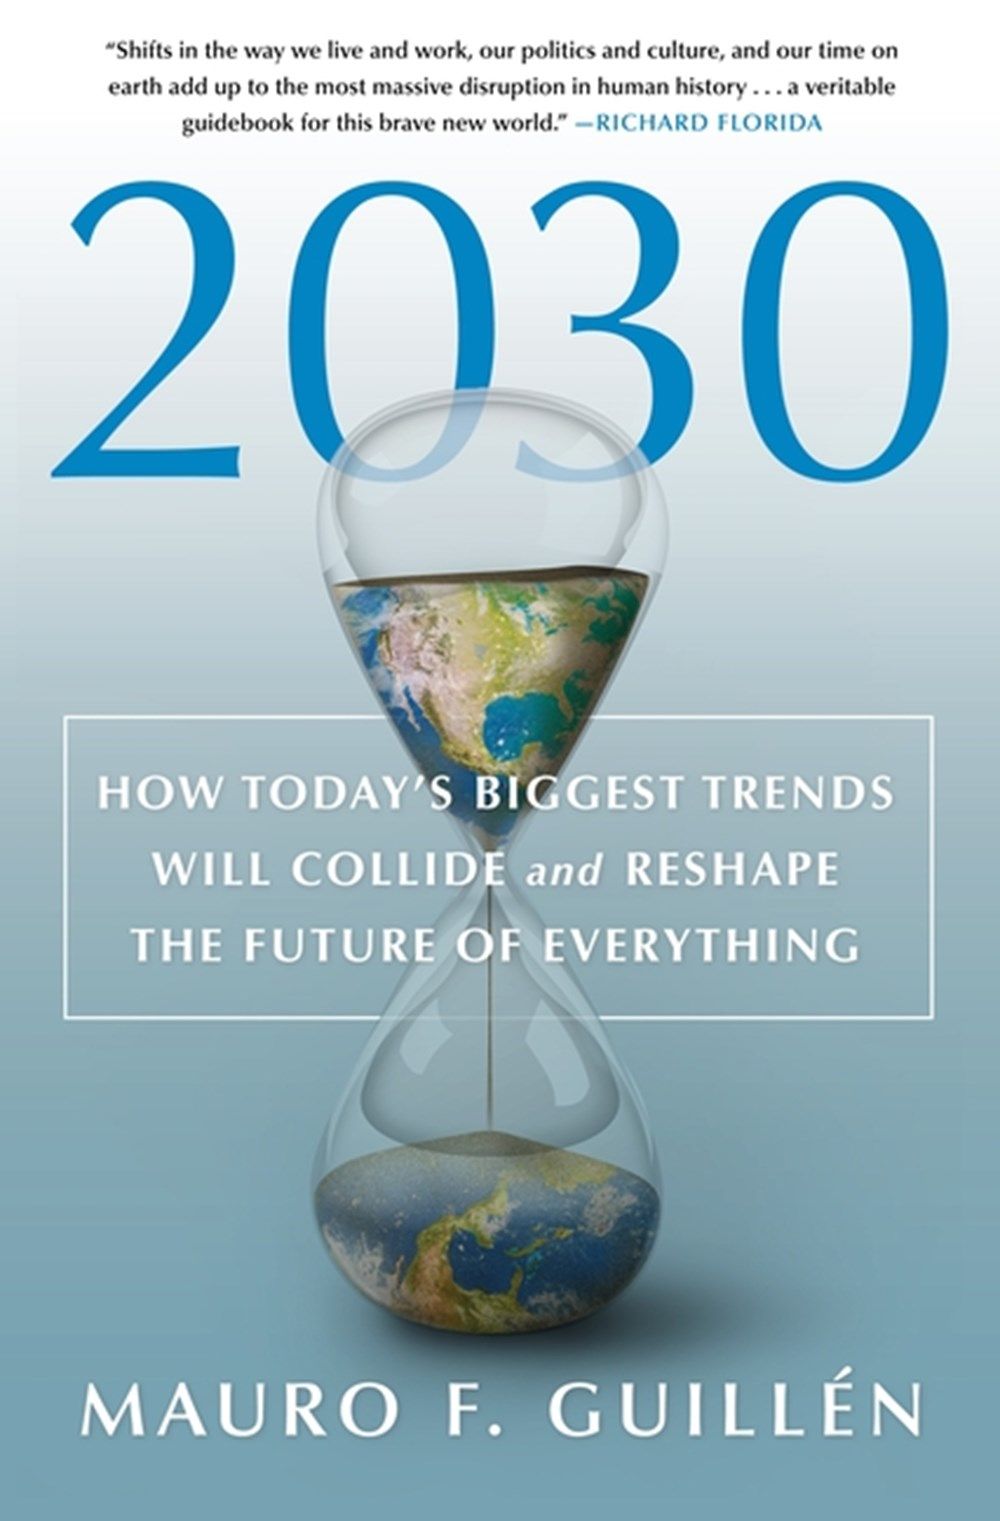 2030 How Today's Biggest Trends Will Collide and Reshape the Future of Everything